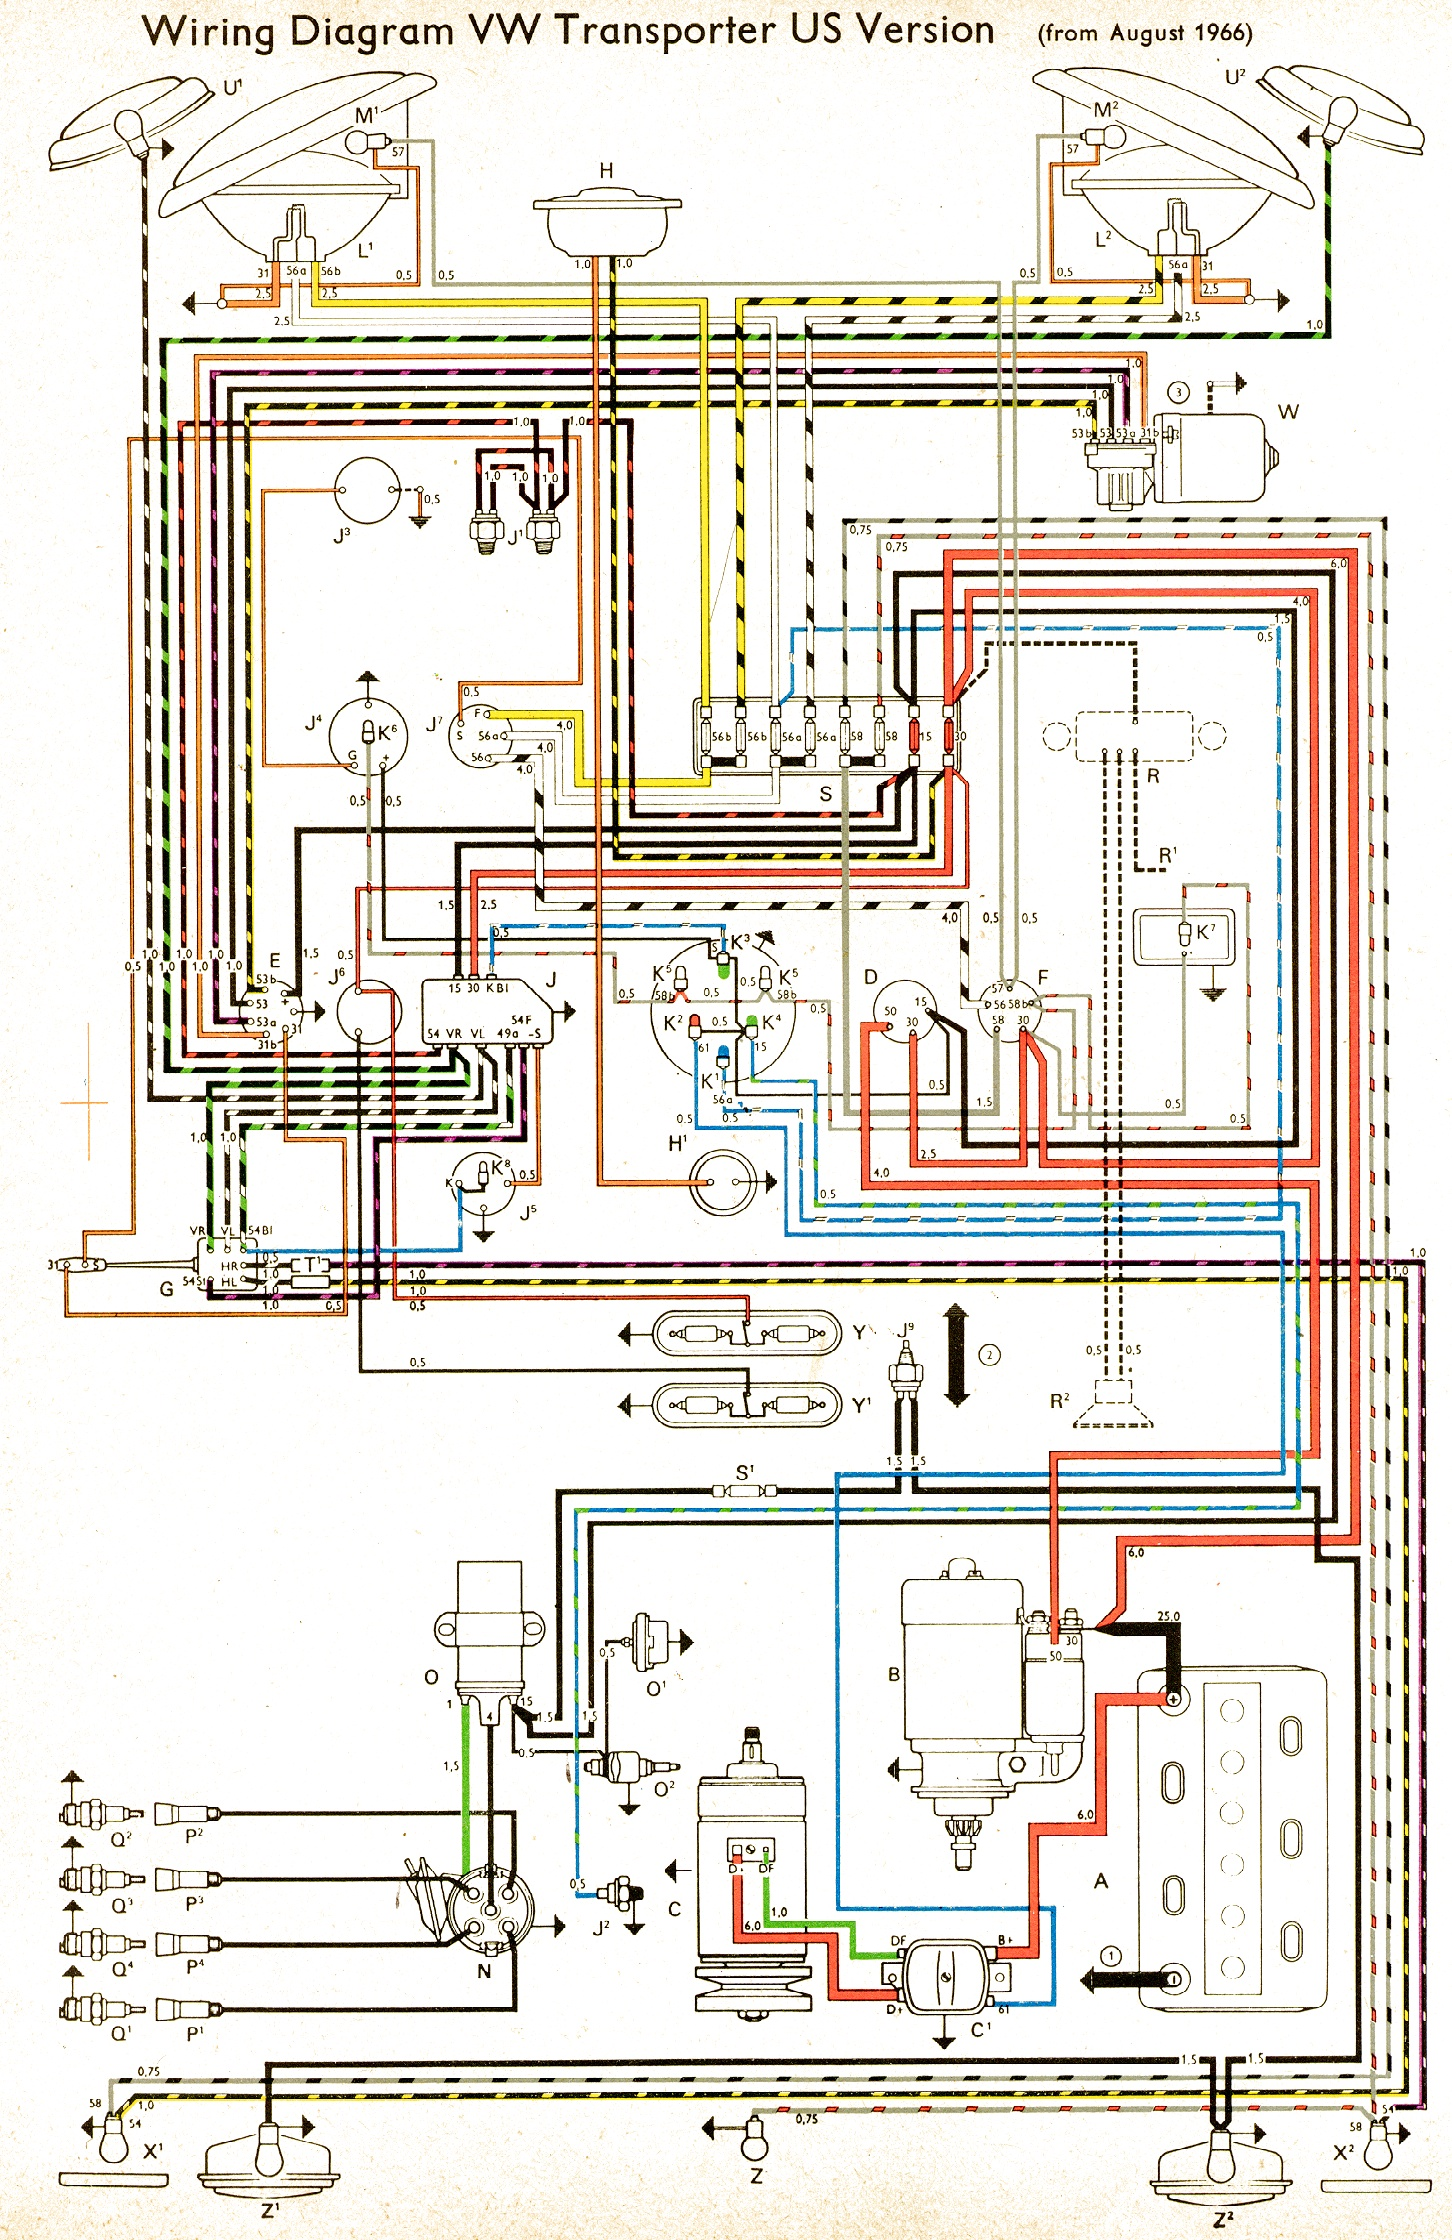 hight resolution of thomas bus wiring schematics 1999 wiring library 2007 thomas bus wiring schematic com vw bus